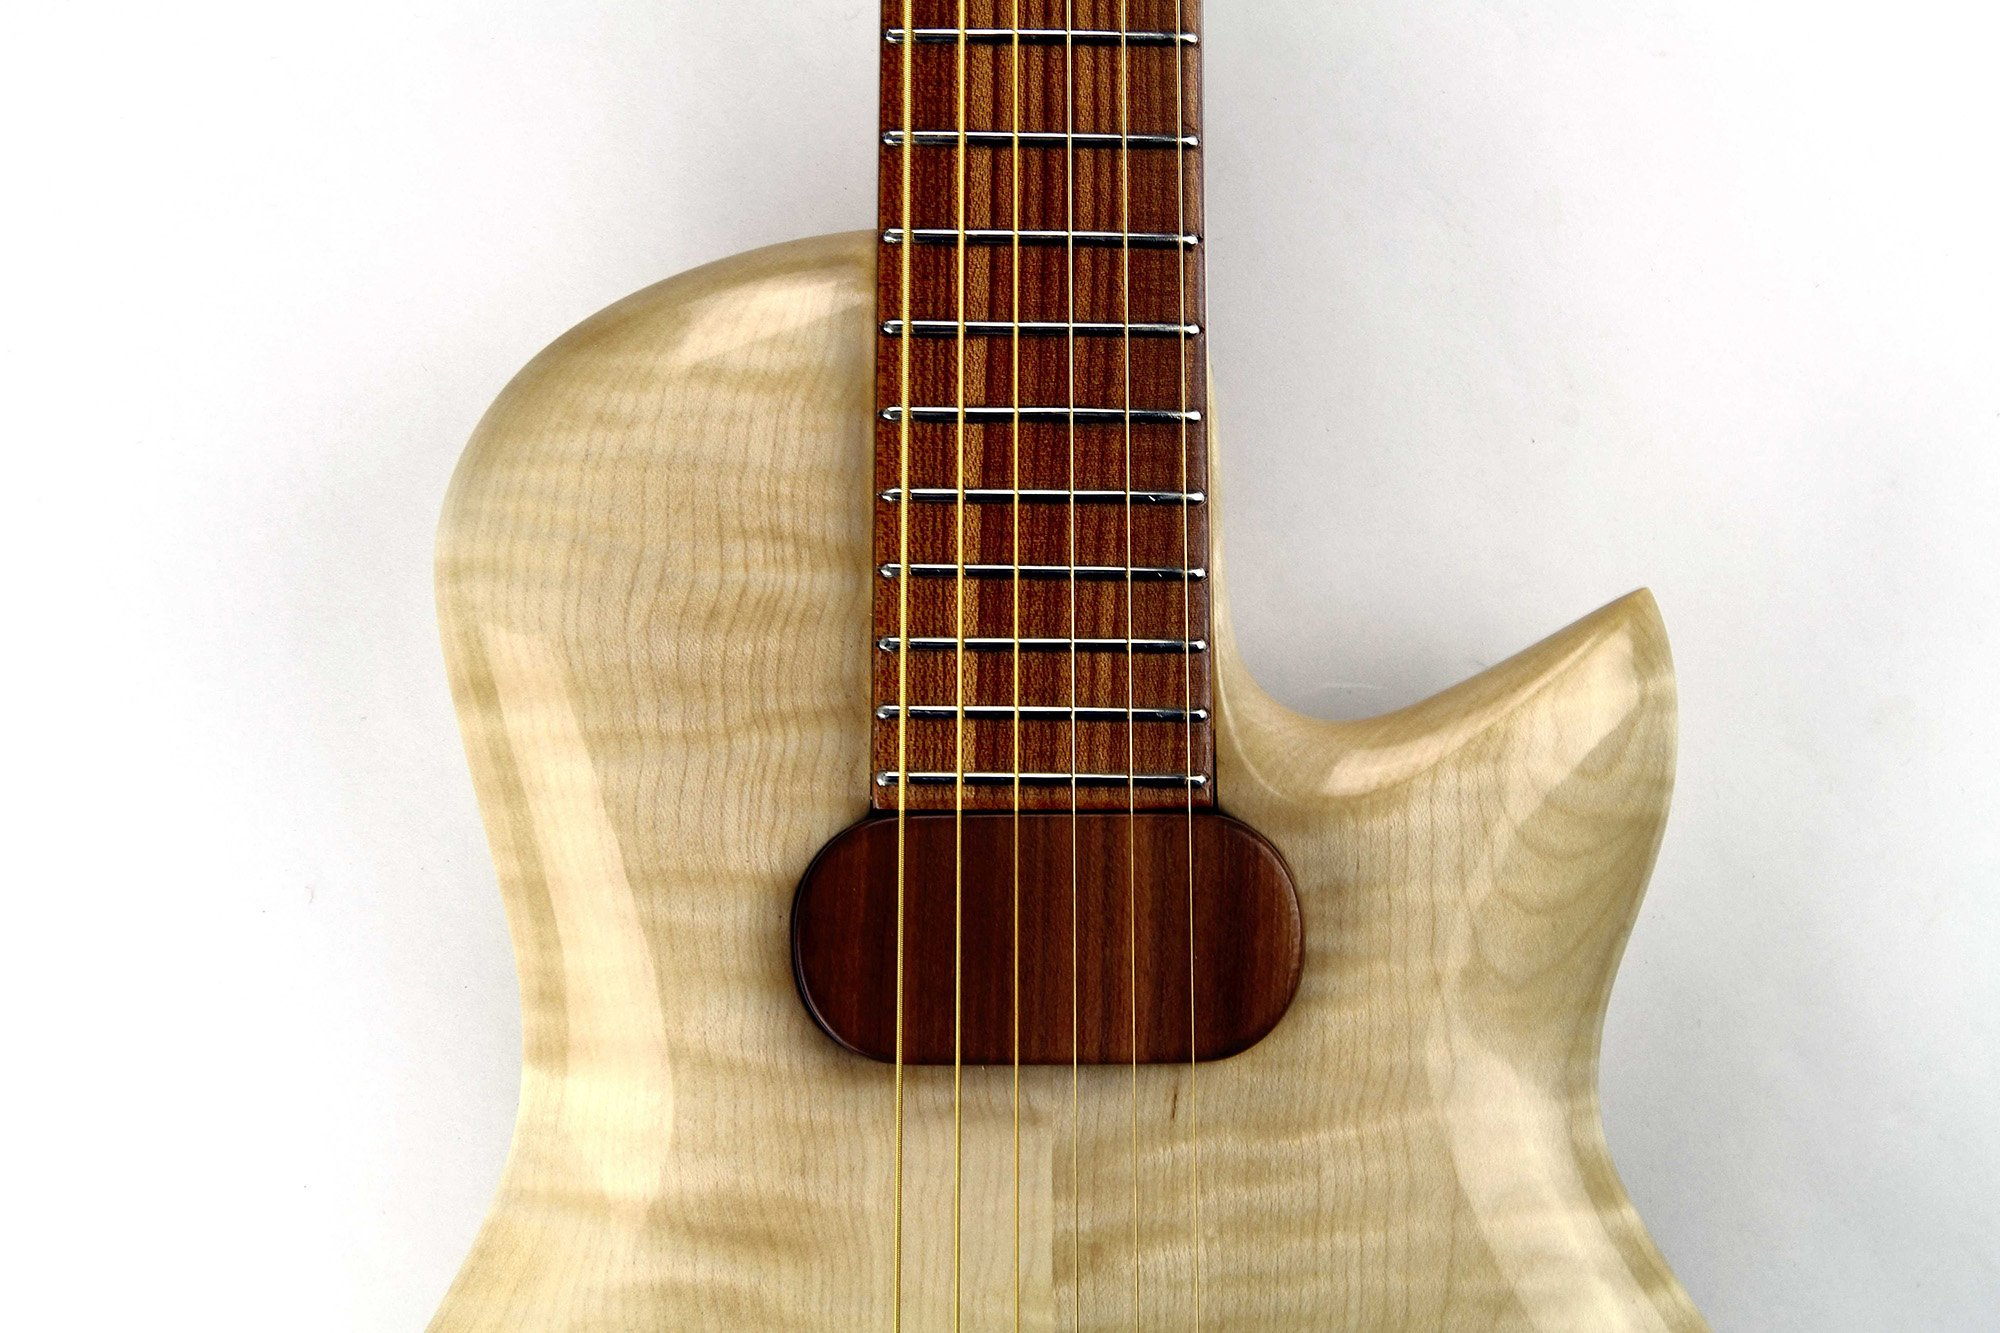 CannaGuitar with fretboard from Sonowood maple